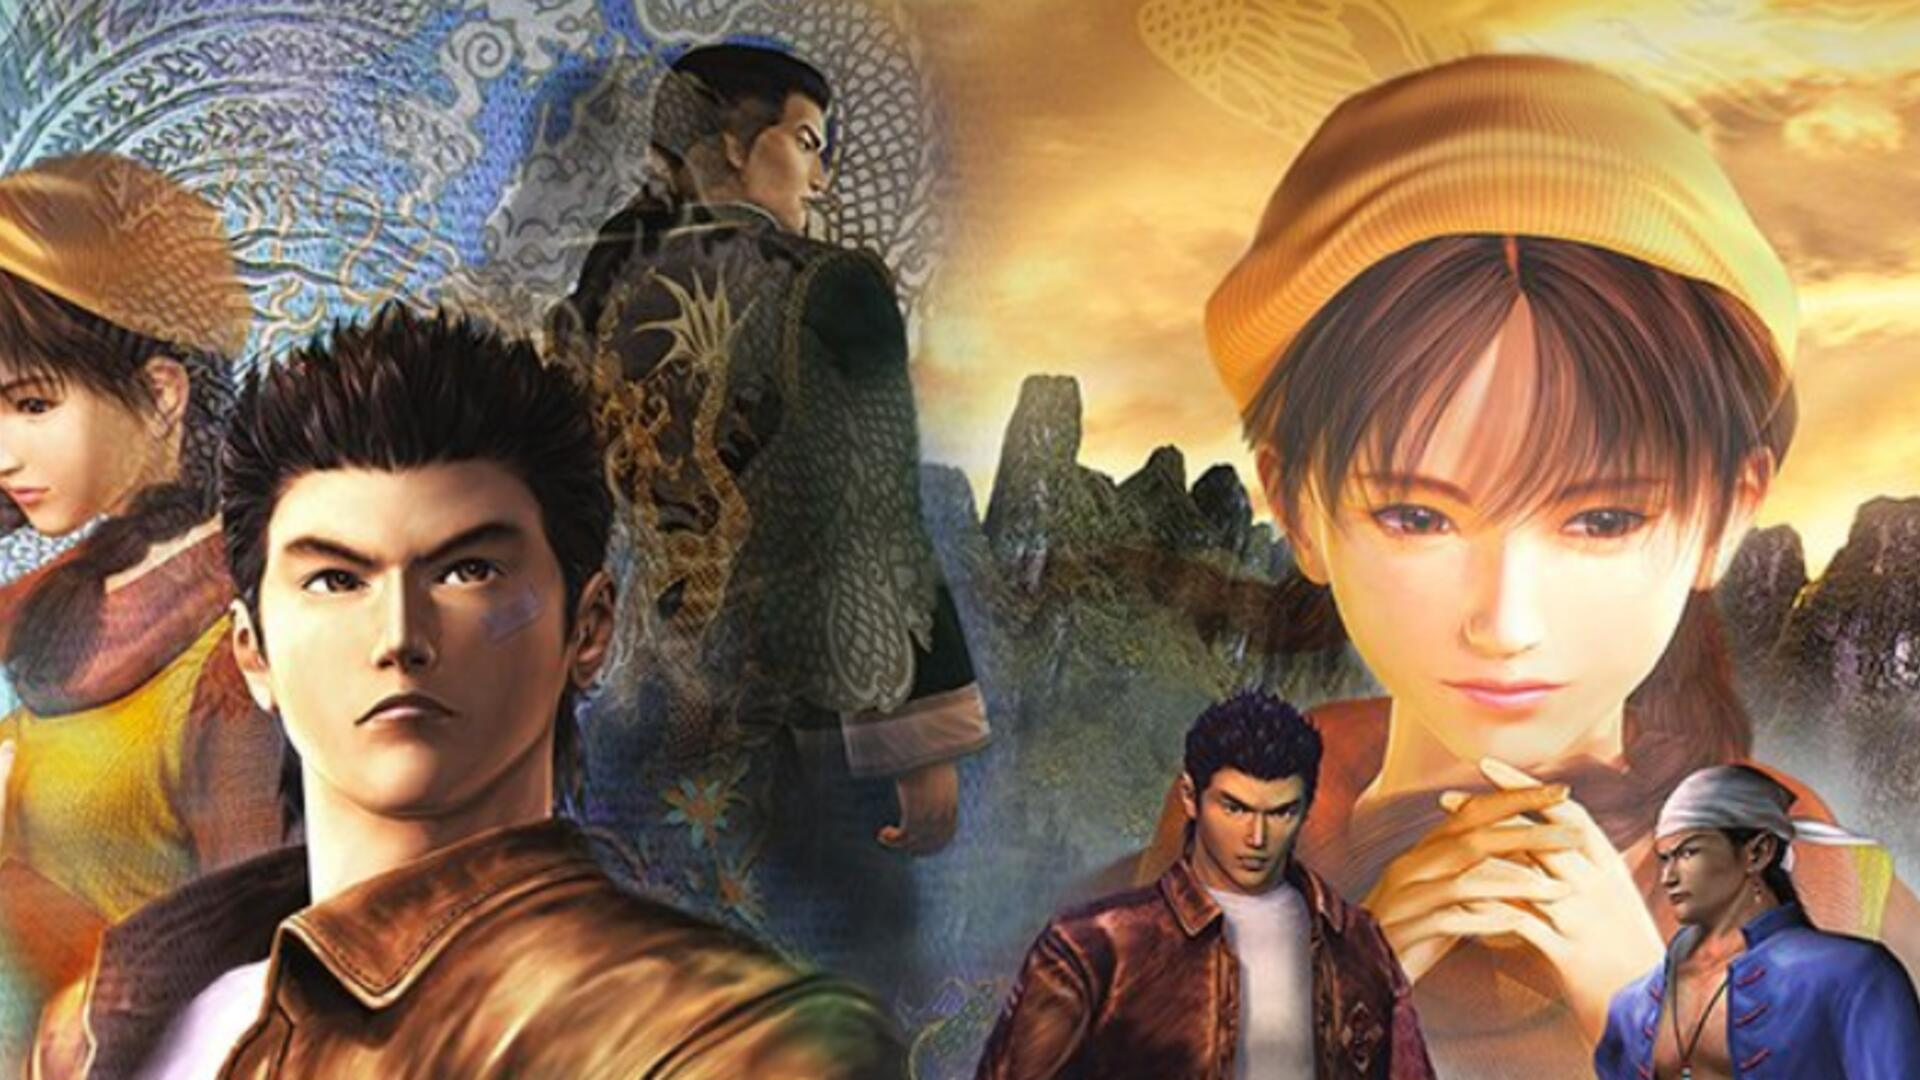 Shenmue 1 and 2 HD Remaster is Coming to PS4, Xbox One, and PC in 2018